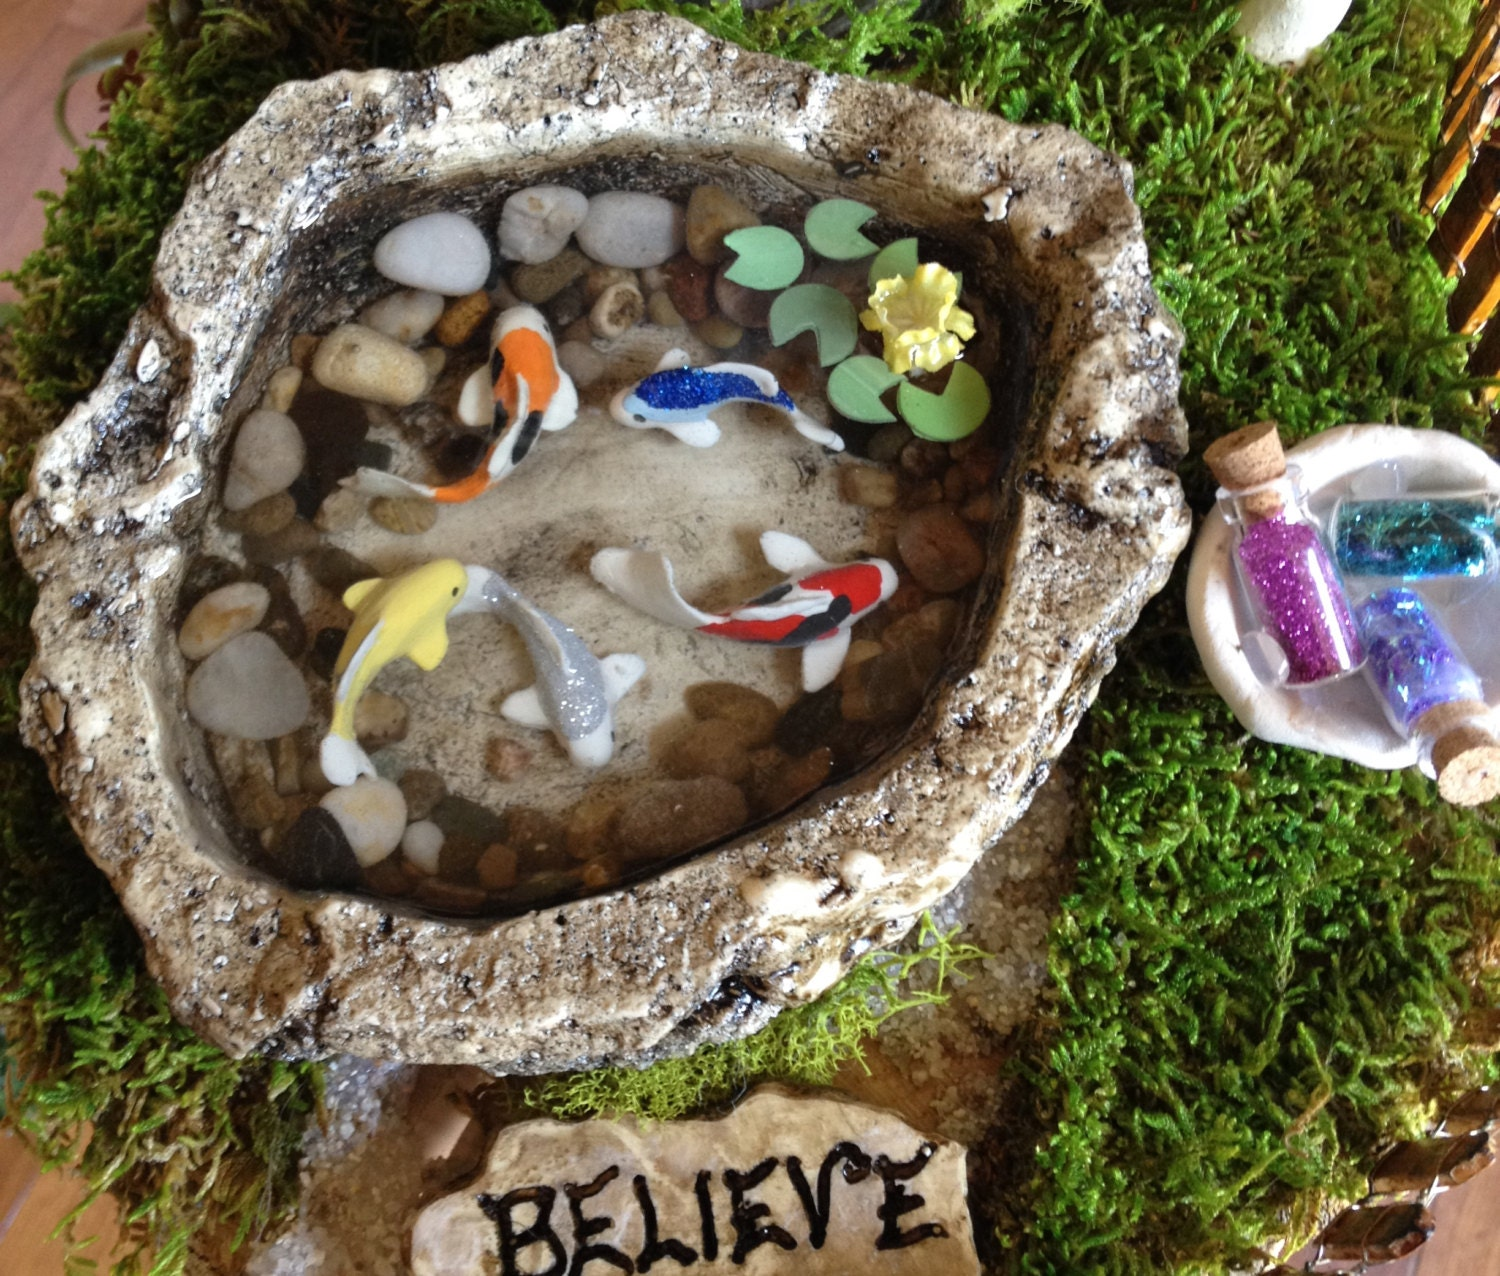 Miniature koi pond d fairy garden accessory by for Miniature fish pond